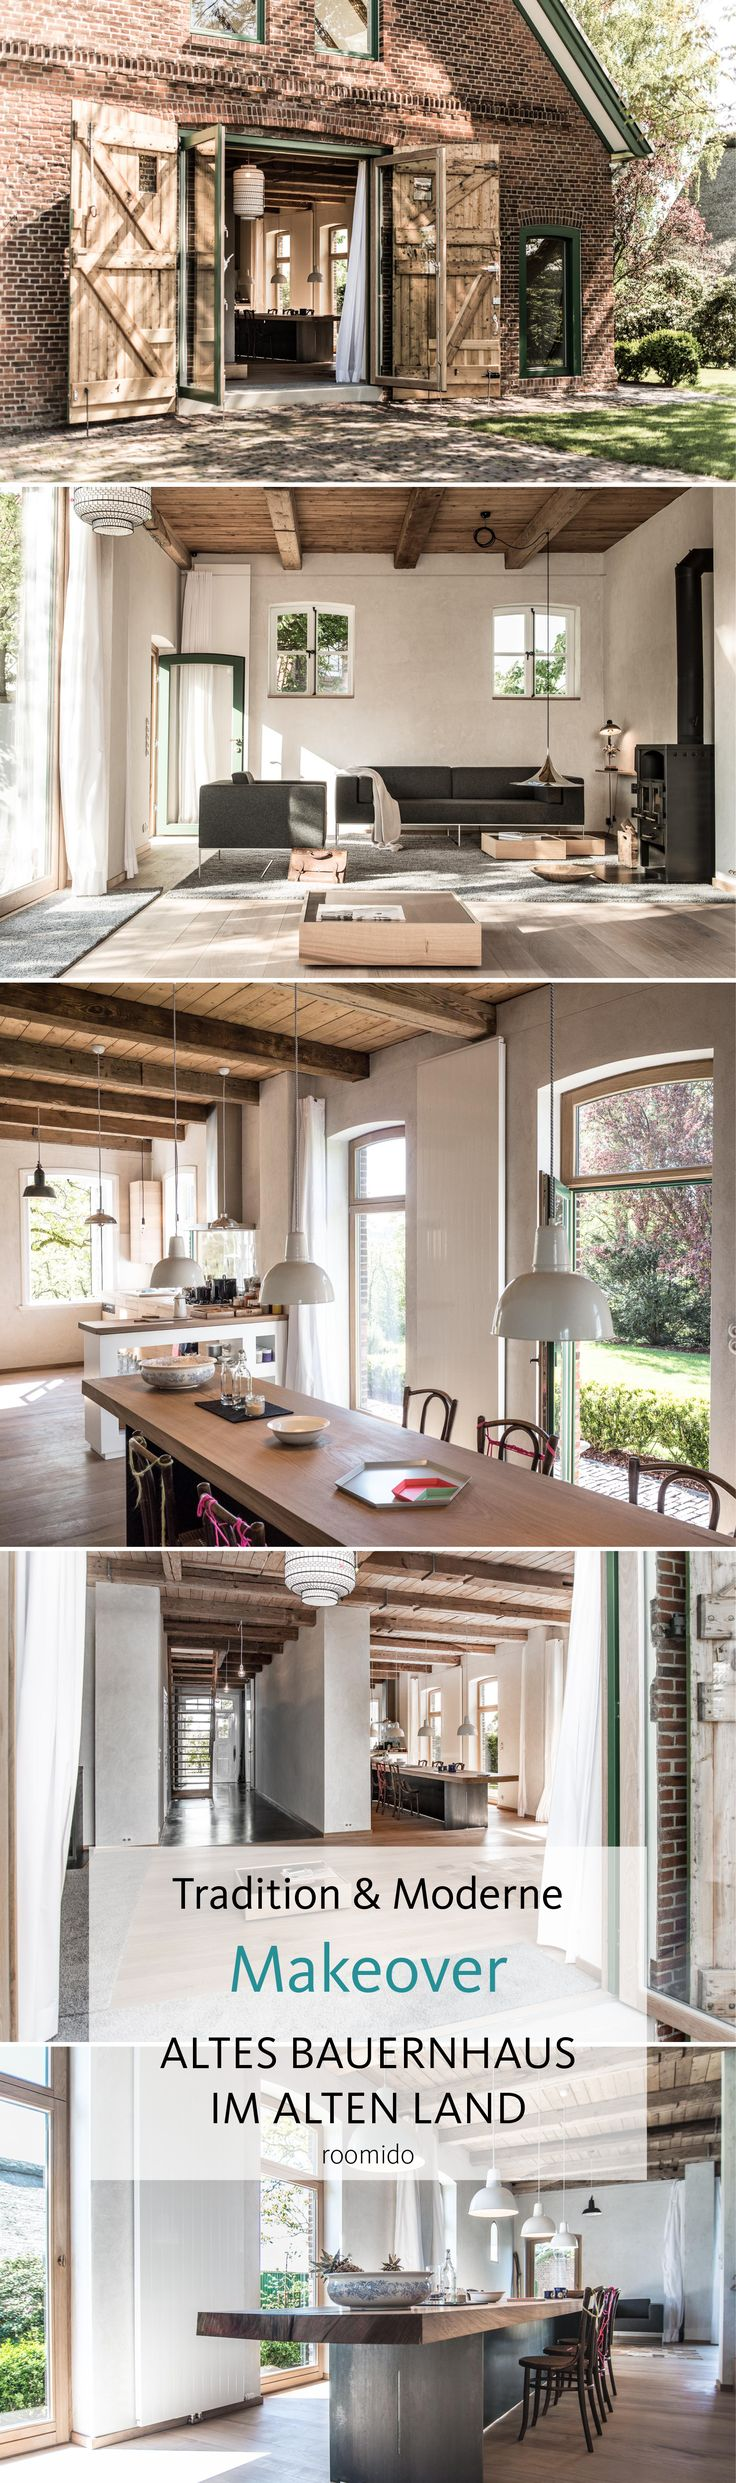 38 best images about wohnen im landhausstil on pinterest | exposed ...